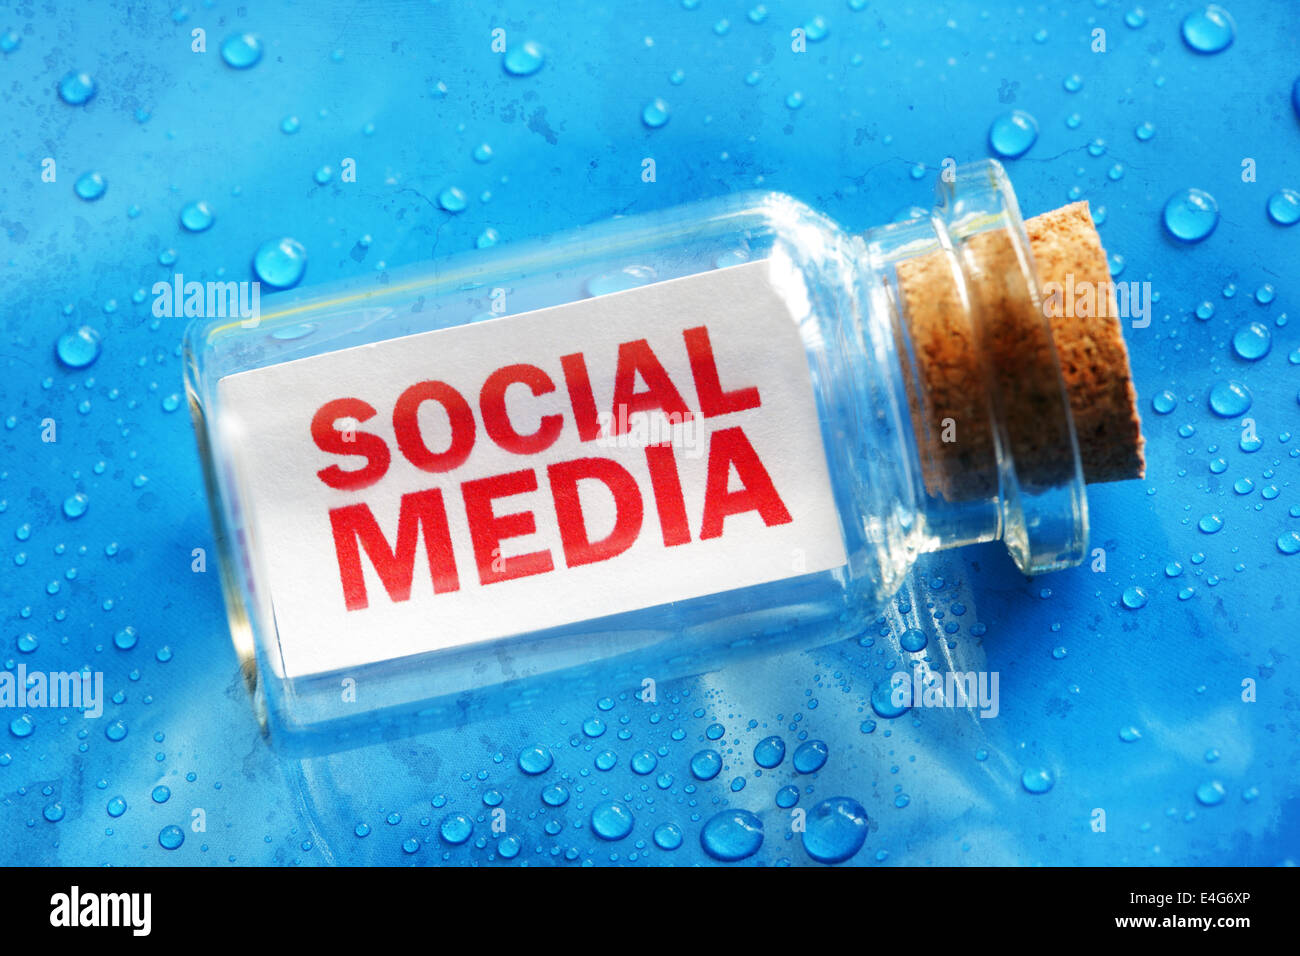 Social media message in a bottle - Stock Image